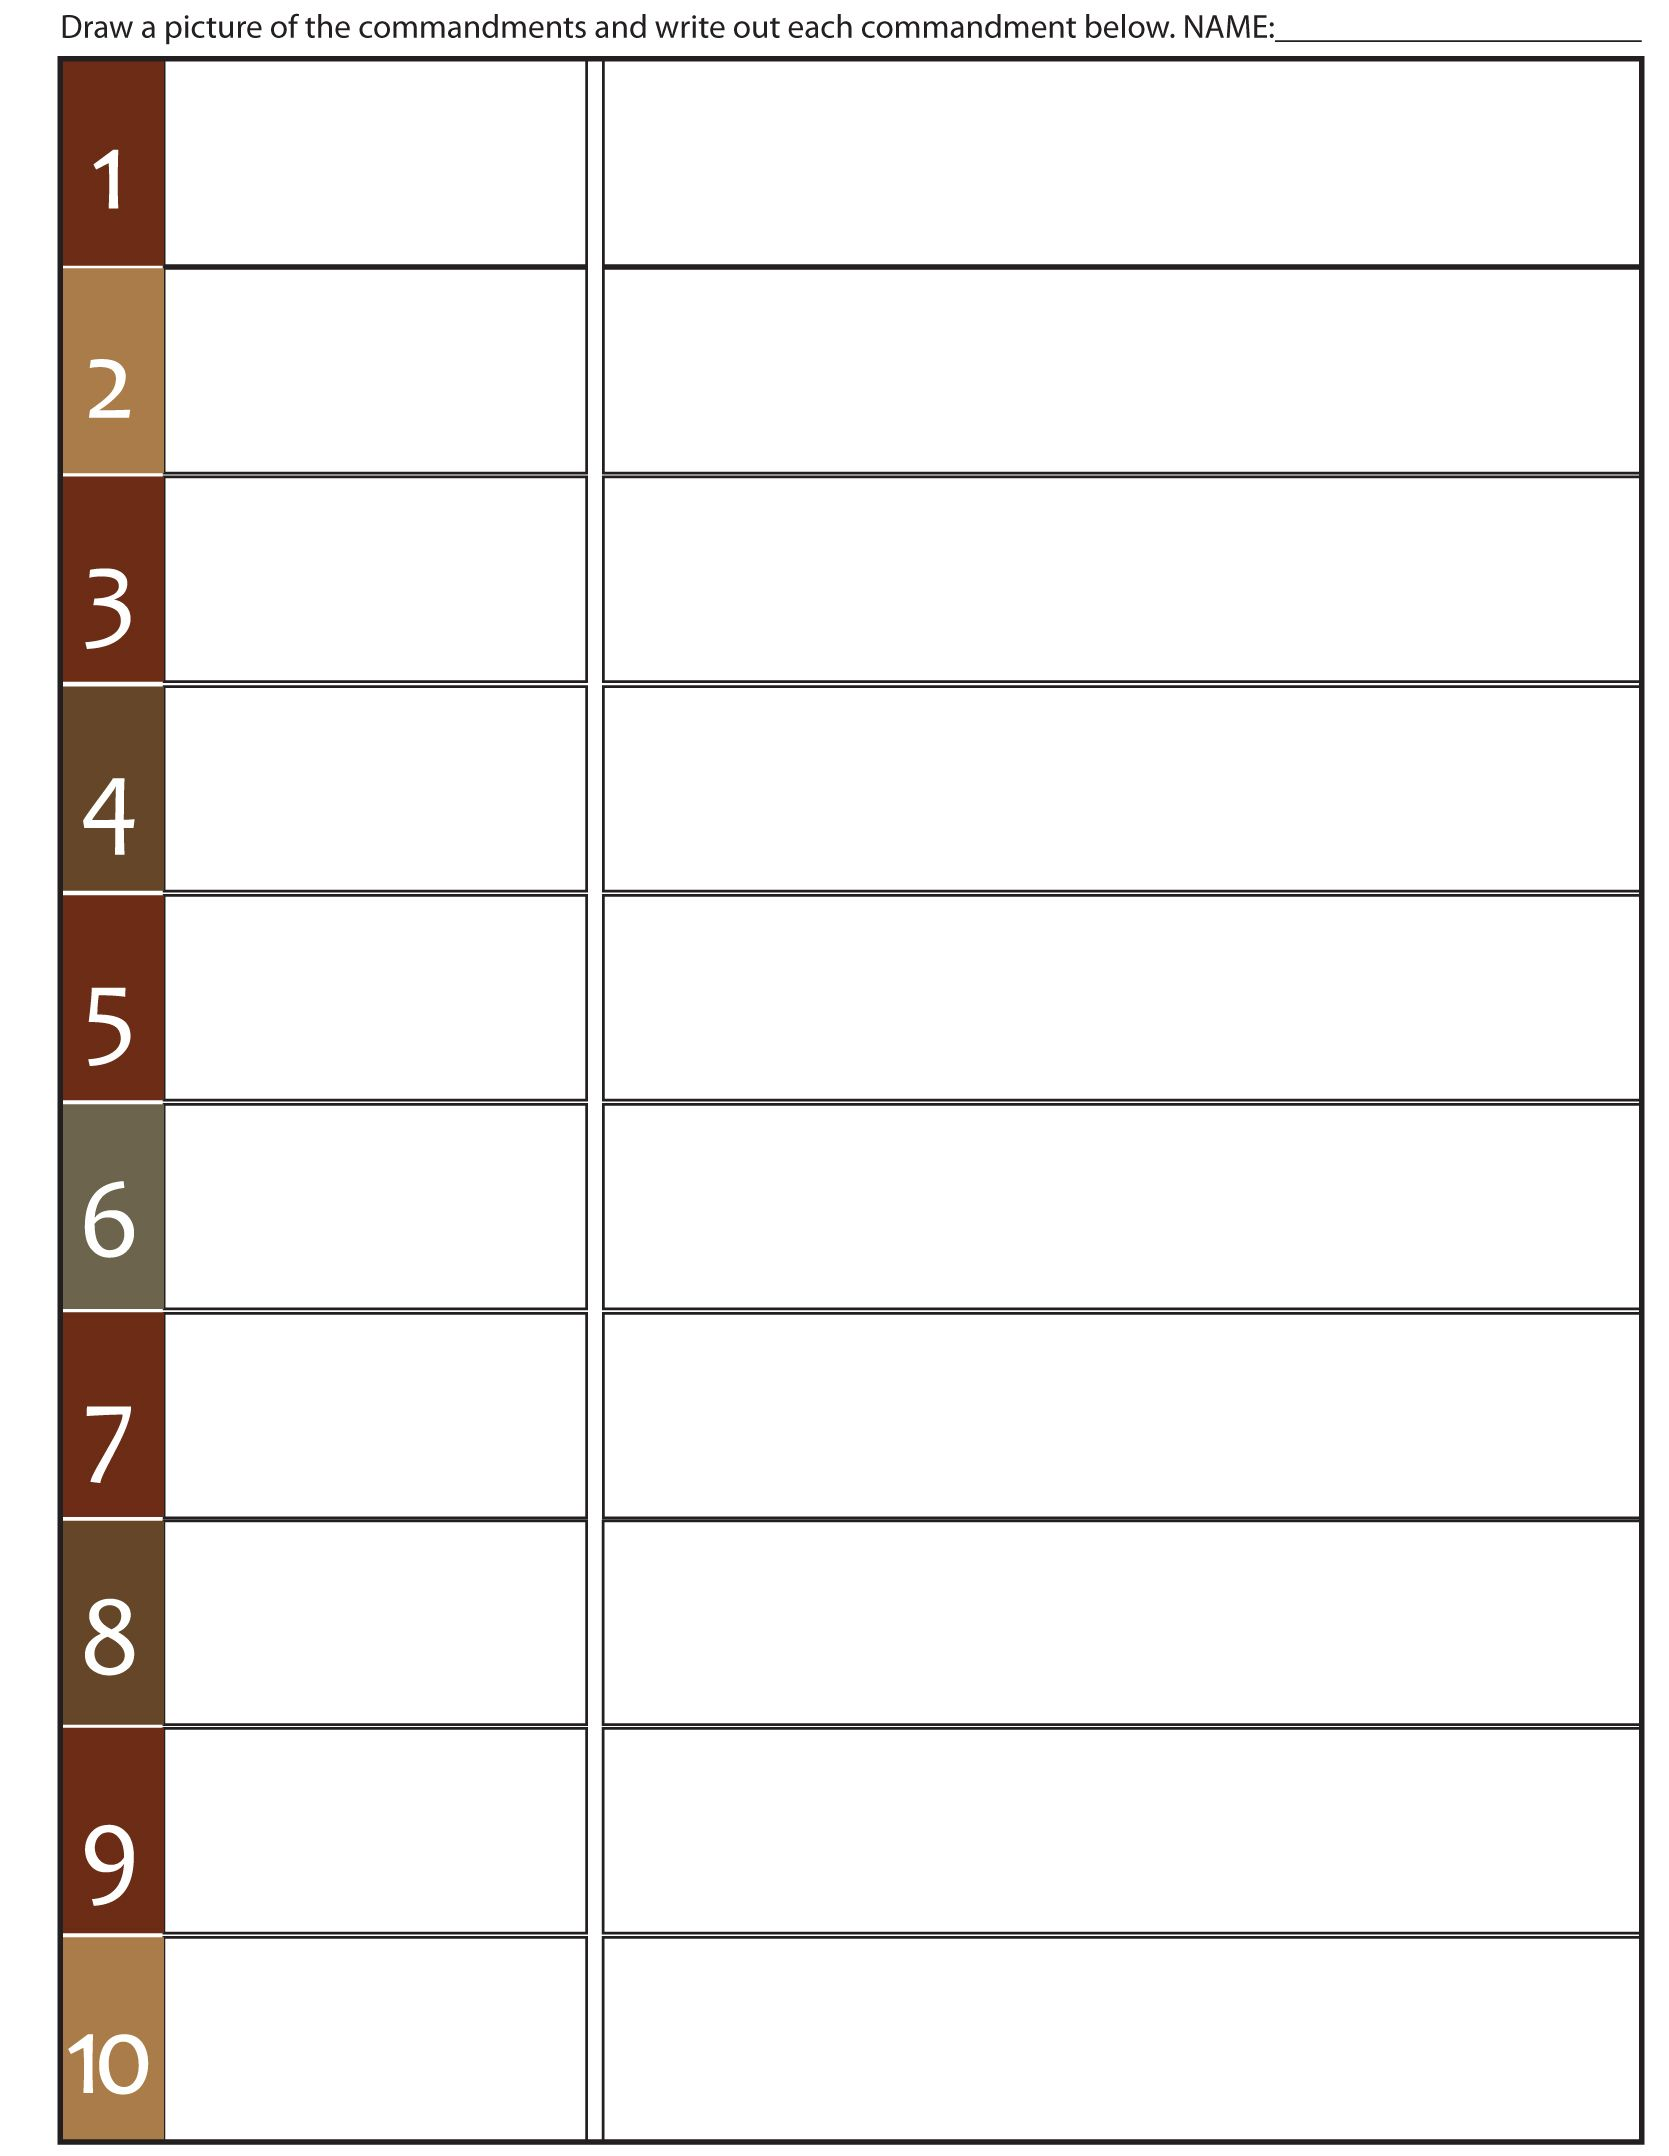 Worksheet To Teach The 10 Commandments Fill In The Blank